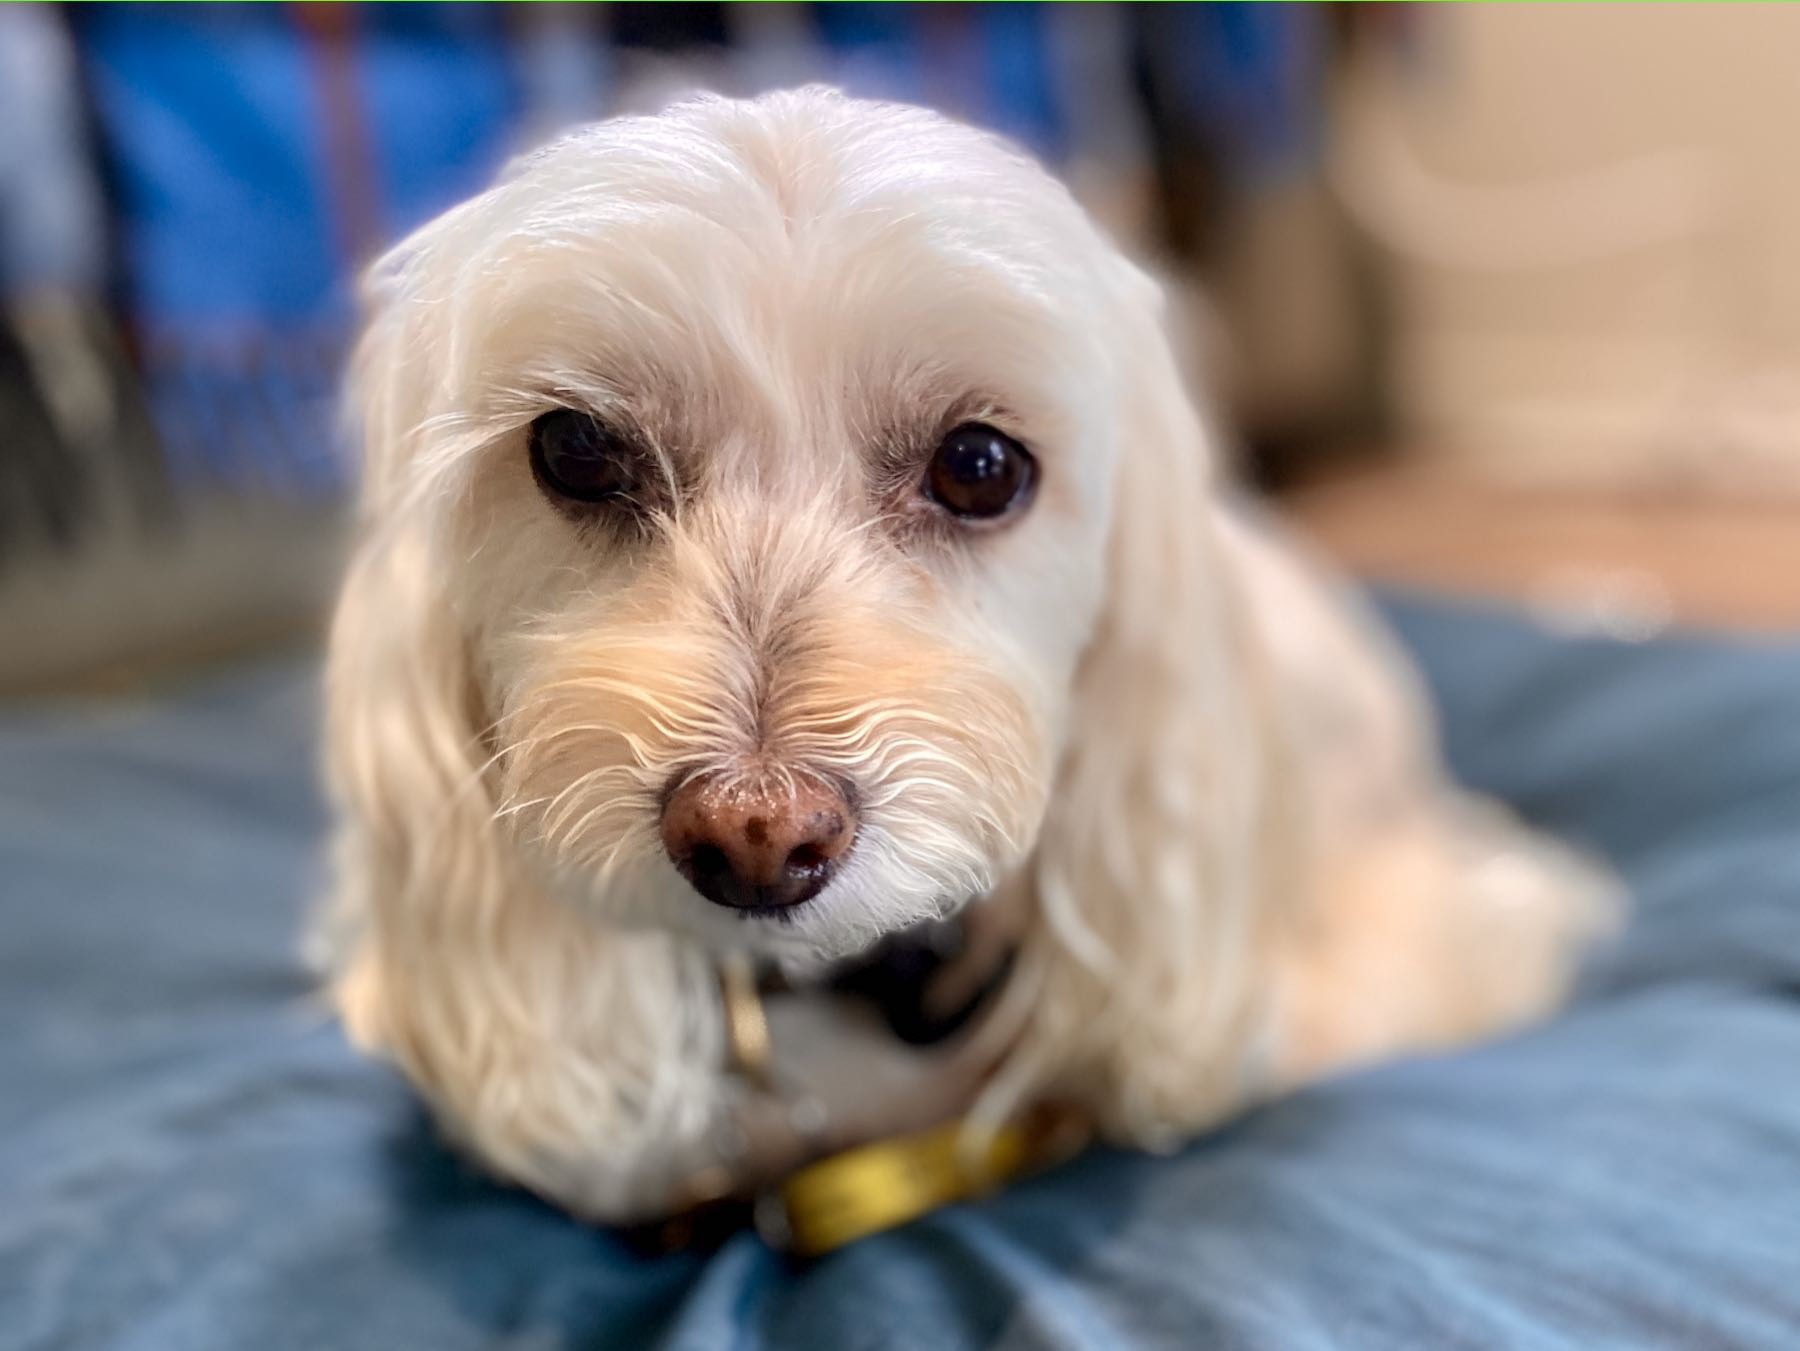 Small white dog on a blue rug and looking at the camera.